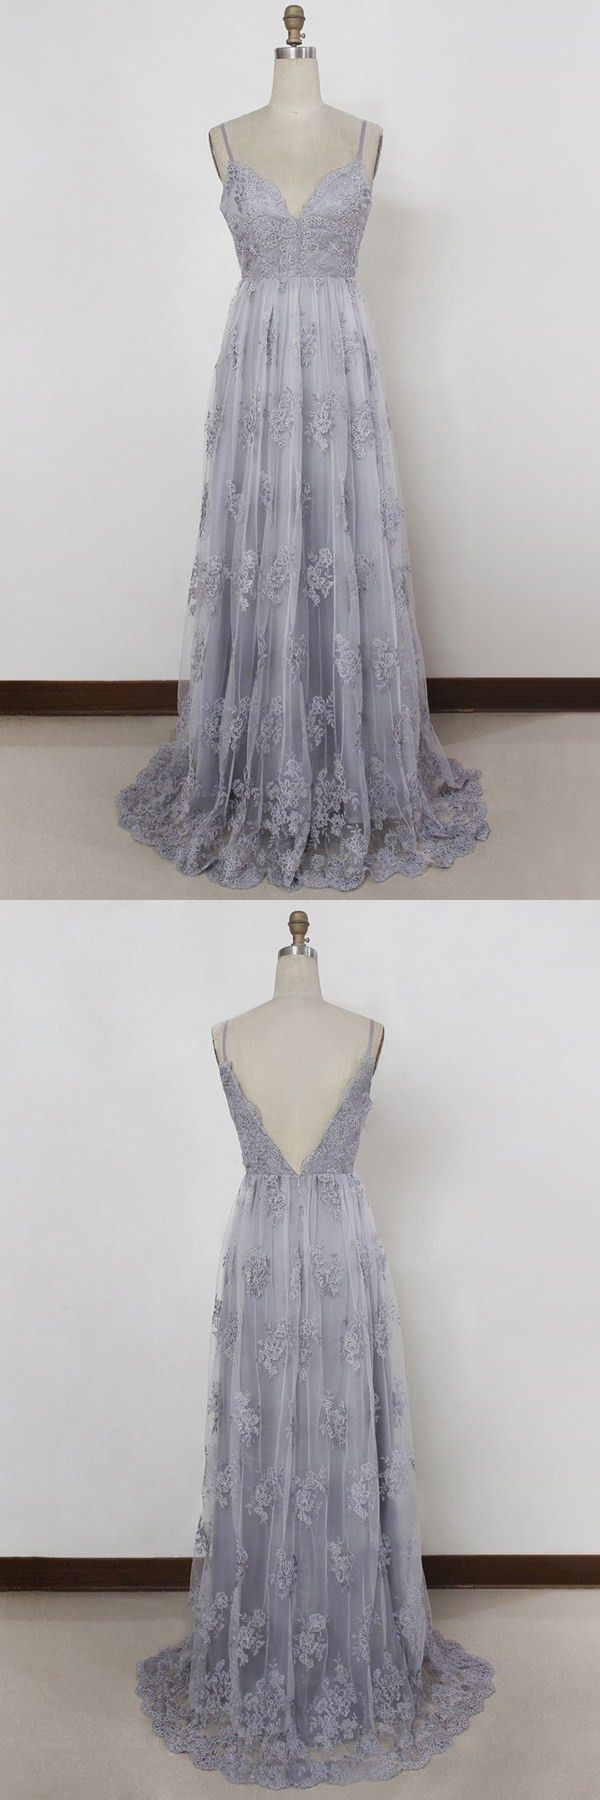 prom dresses, lavender party dresses, lace long prom dresses, cheap backless evening gowns